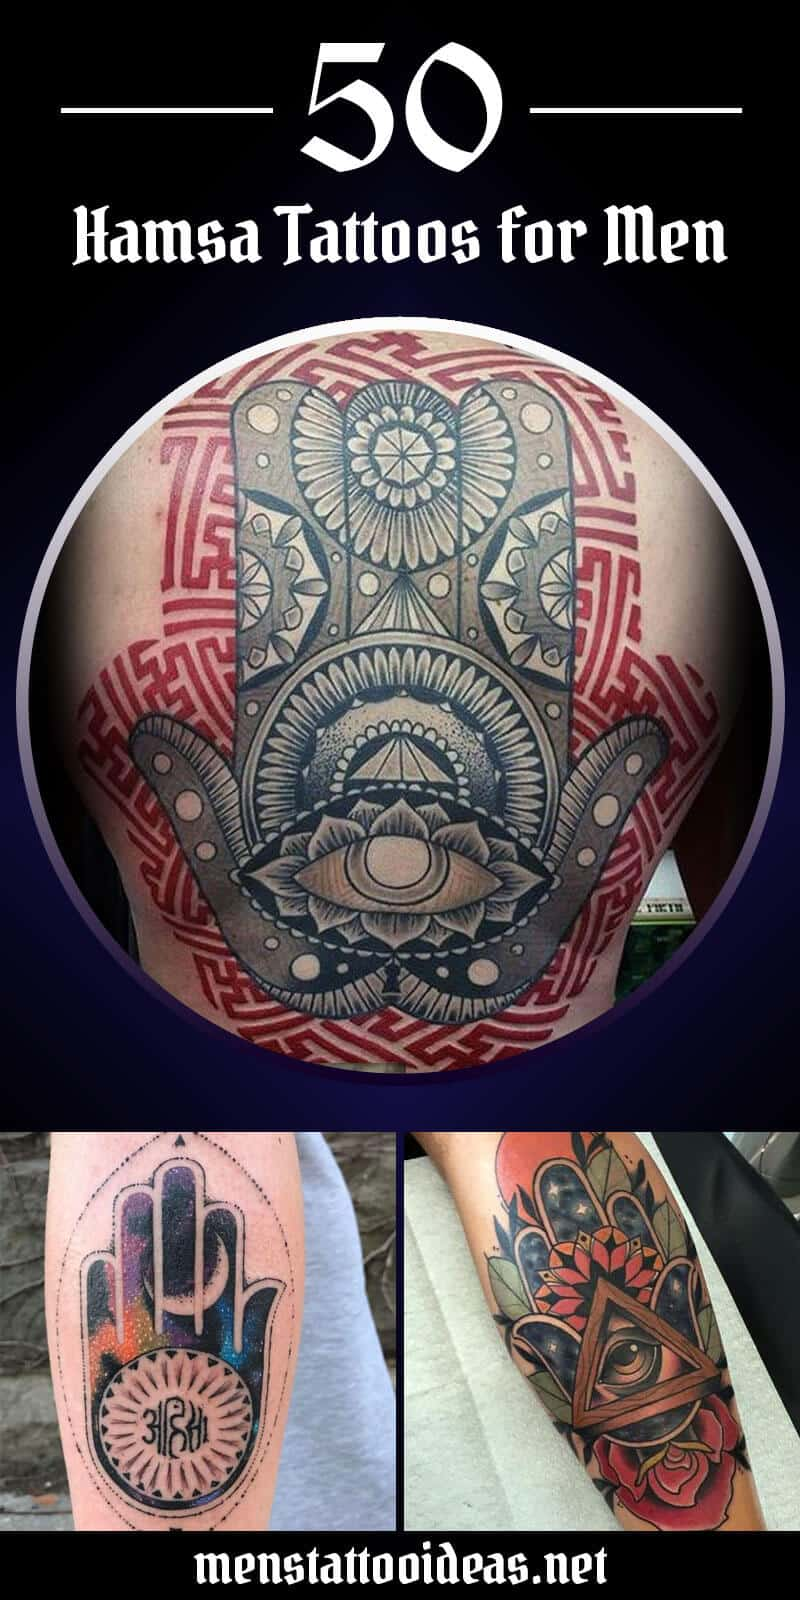 hamsa-tattoos-for-men